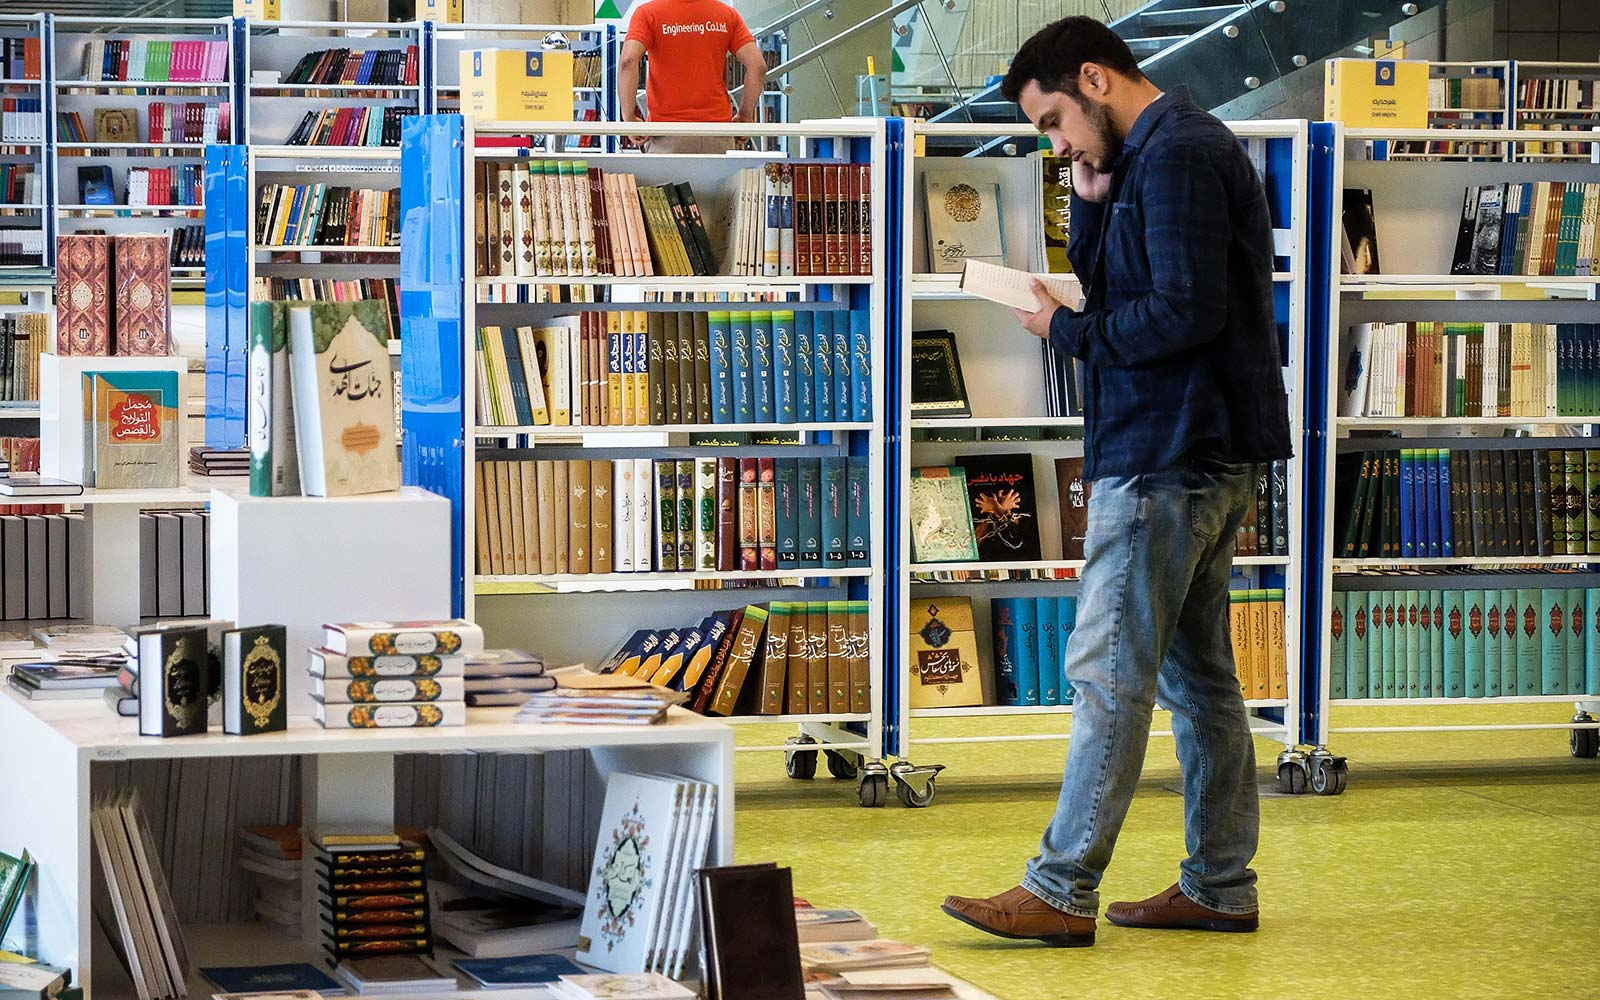 People look at books at Tehran's Book Garden, a new giant academic complex in Iran. The 65,000 square-meter center has several movie theaters, science halls, a restaurant, a prayer room and million books